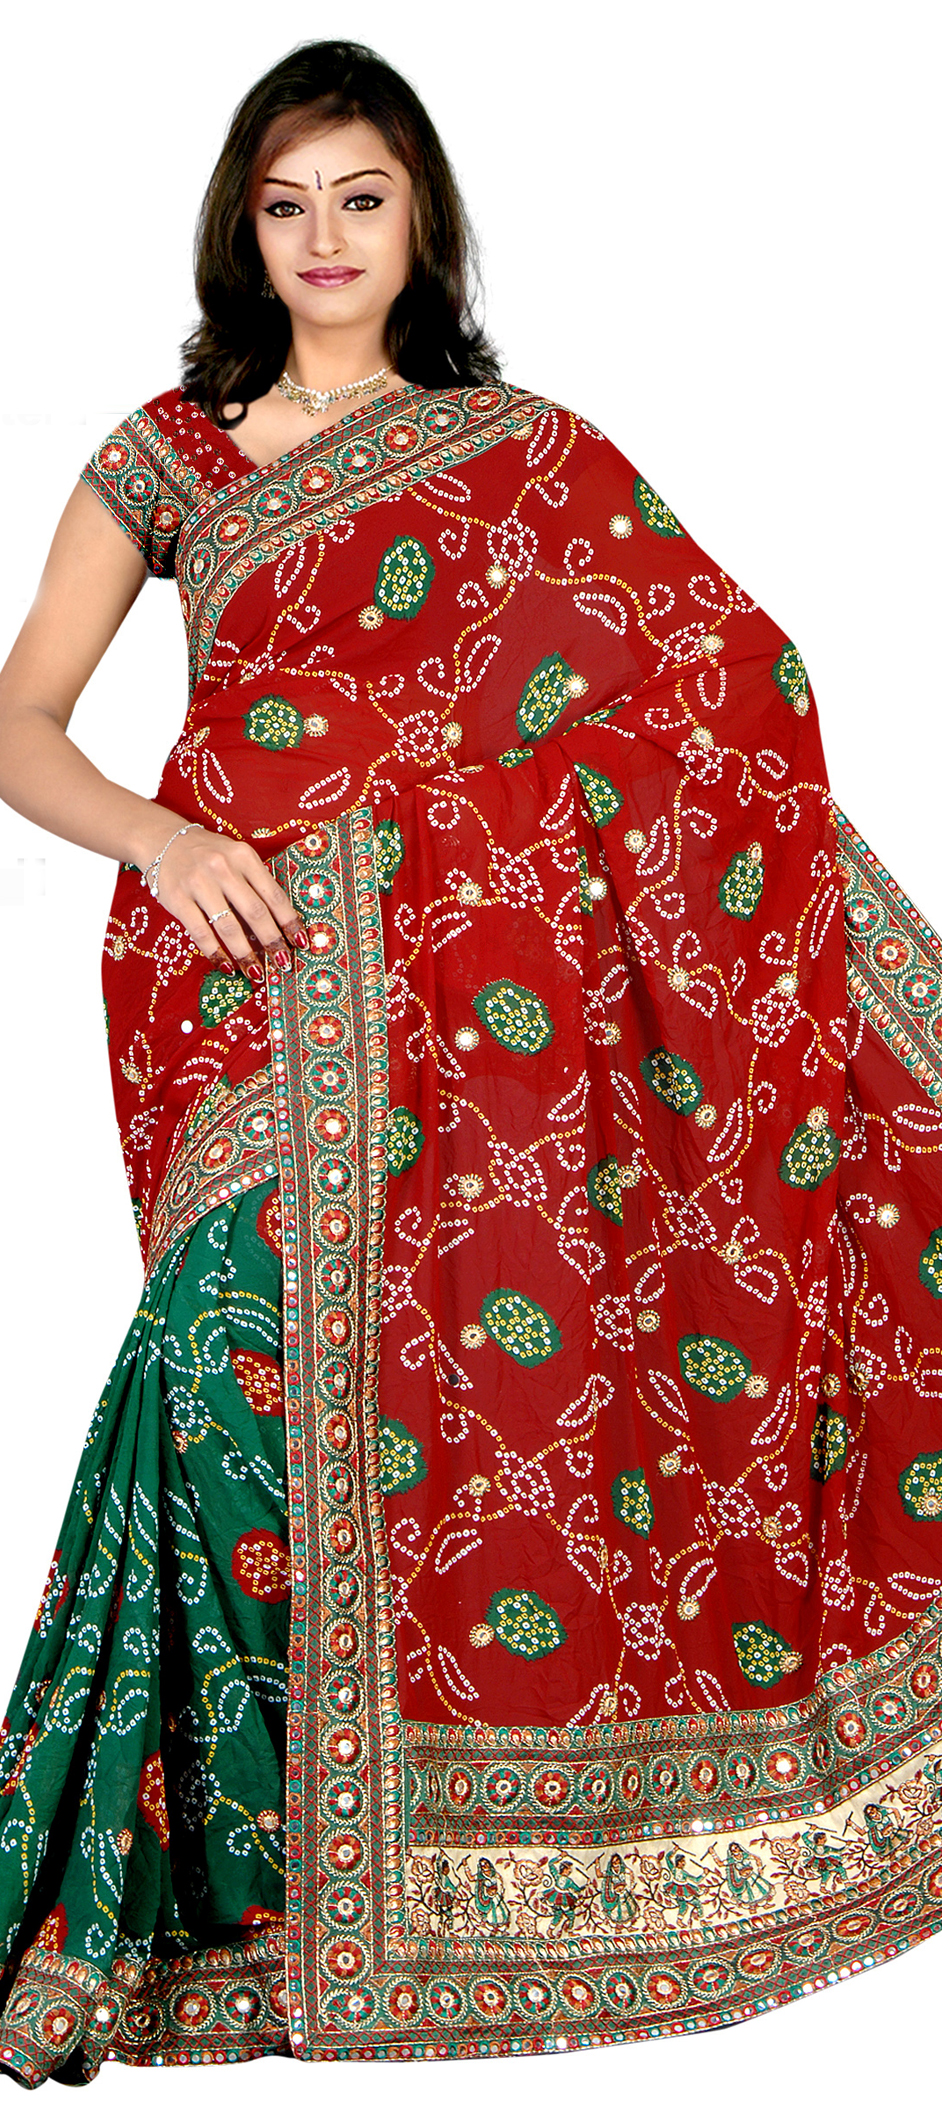 sarees of india The wardrobe of a saree enthusiast woman has atleast one saree from different regions of india it is their hobby and desires to own the specialties and the traditional sarees of the regions across india.